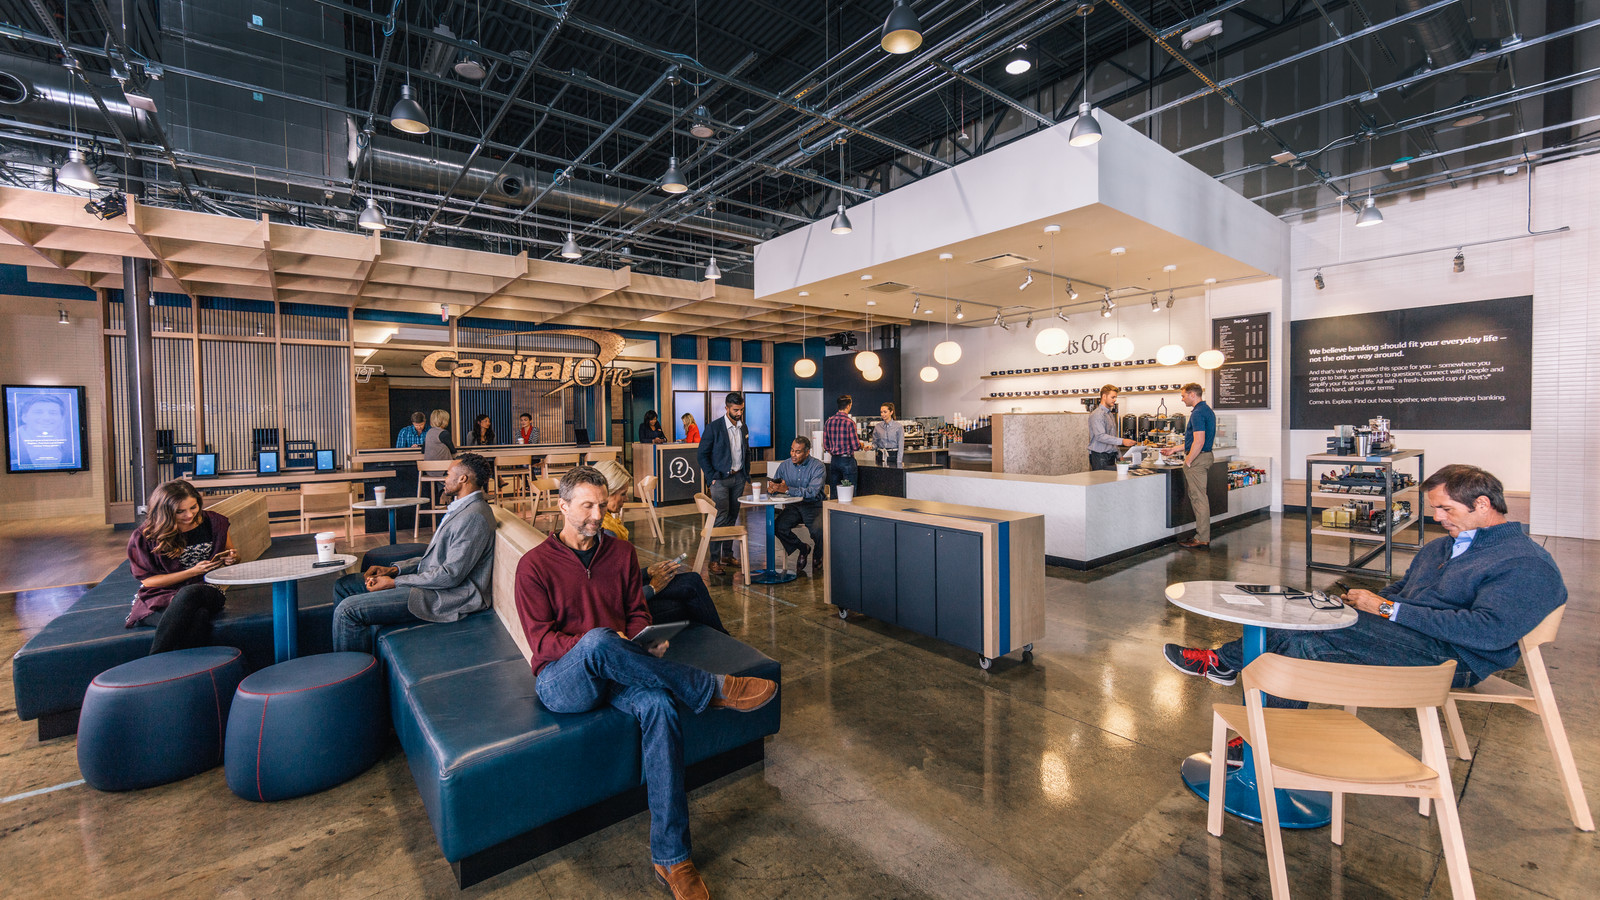 Capital One Is Opening Coffee Shop And Bank Hybrids In